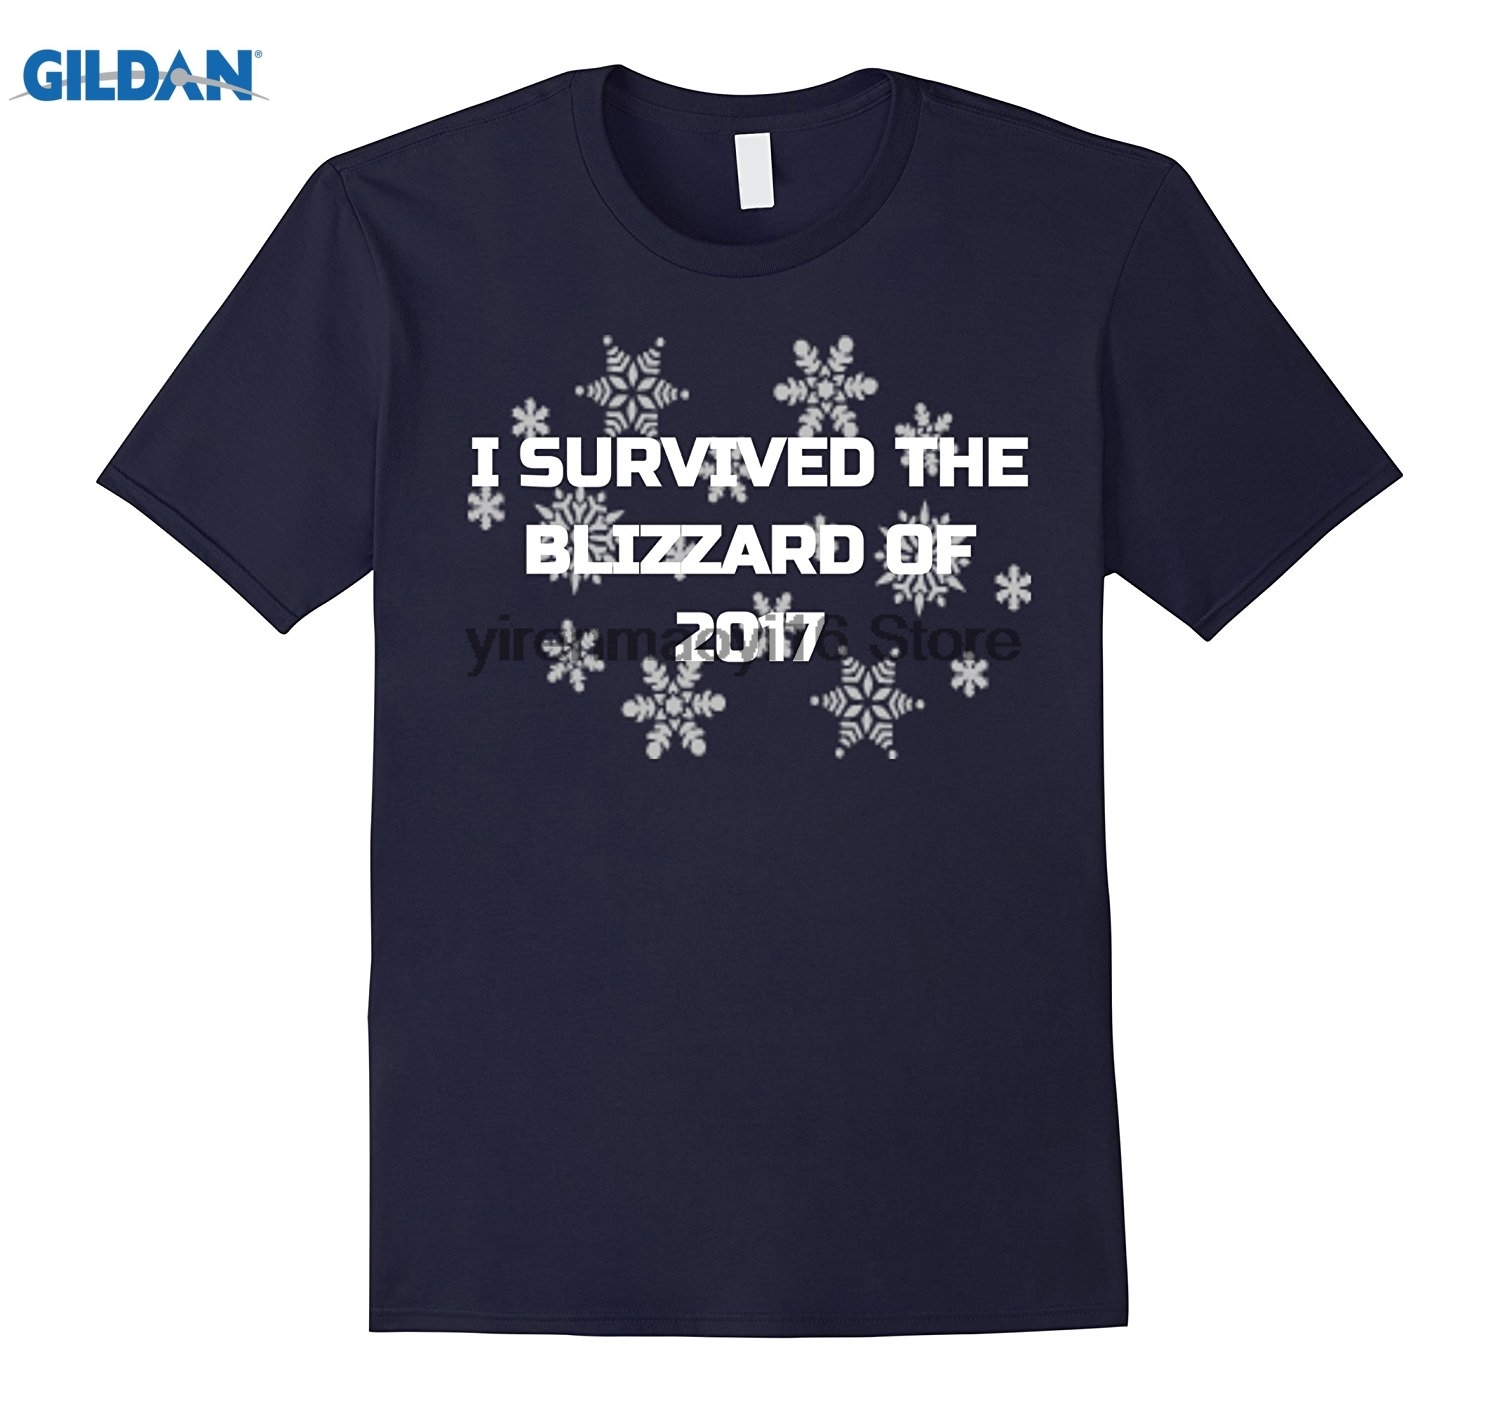 GILDAN 2018 I Survived The Blizzard of 2018 Funny Noreaster Shirt